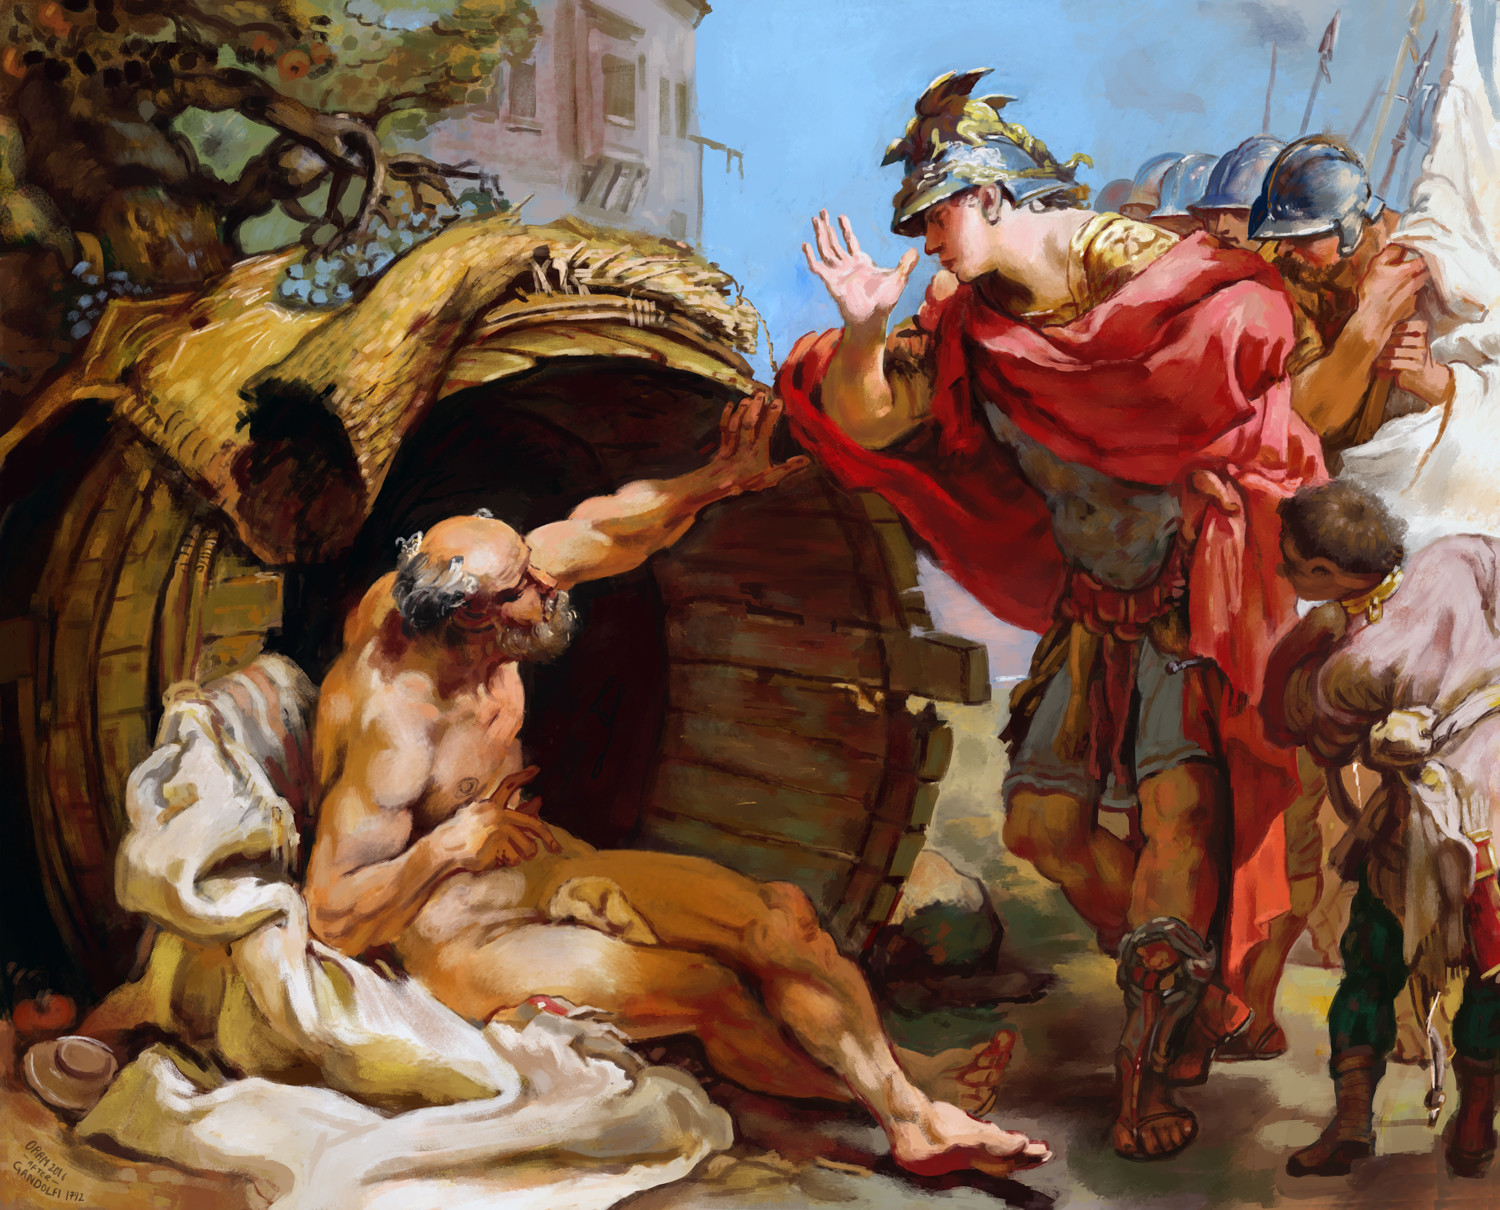 f5e6e0da9bf9 luke oram - Diogenes and Alexander - after Gandolfi